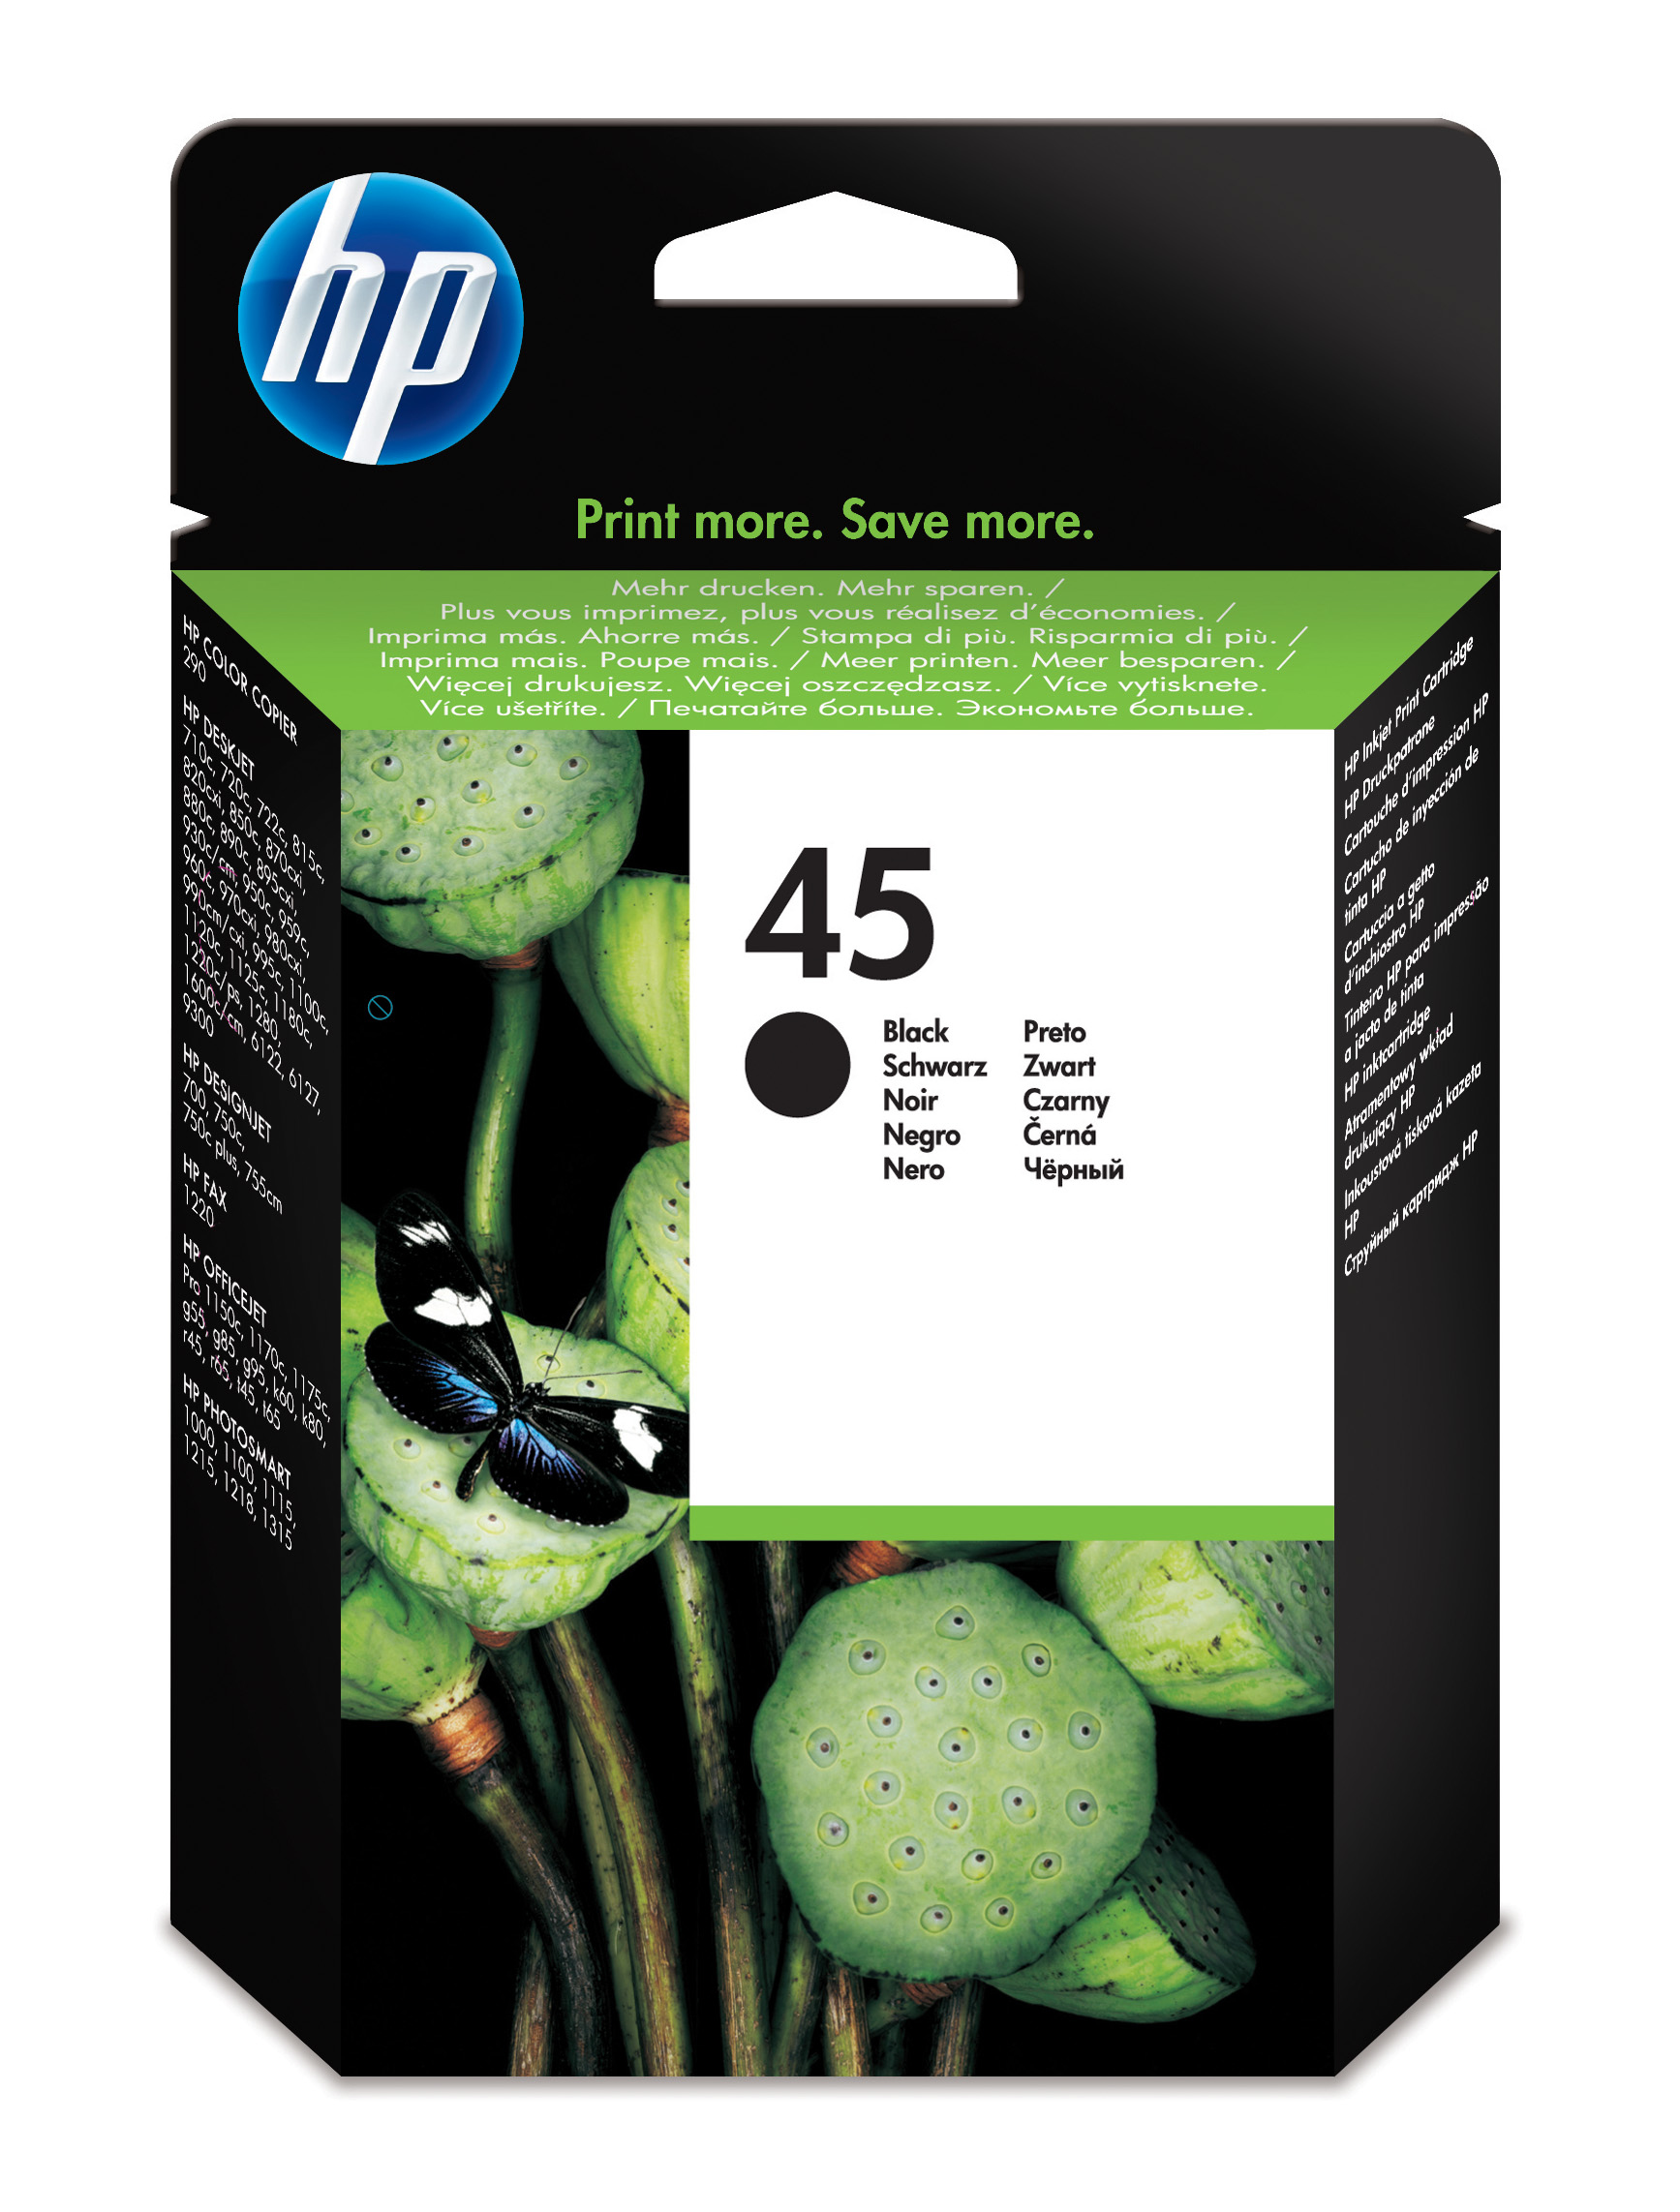 Remanufactured HP 51645AE (45) Black Ink Cartridge 51645A - rem01